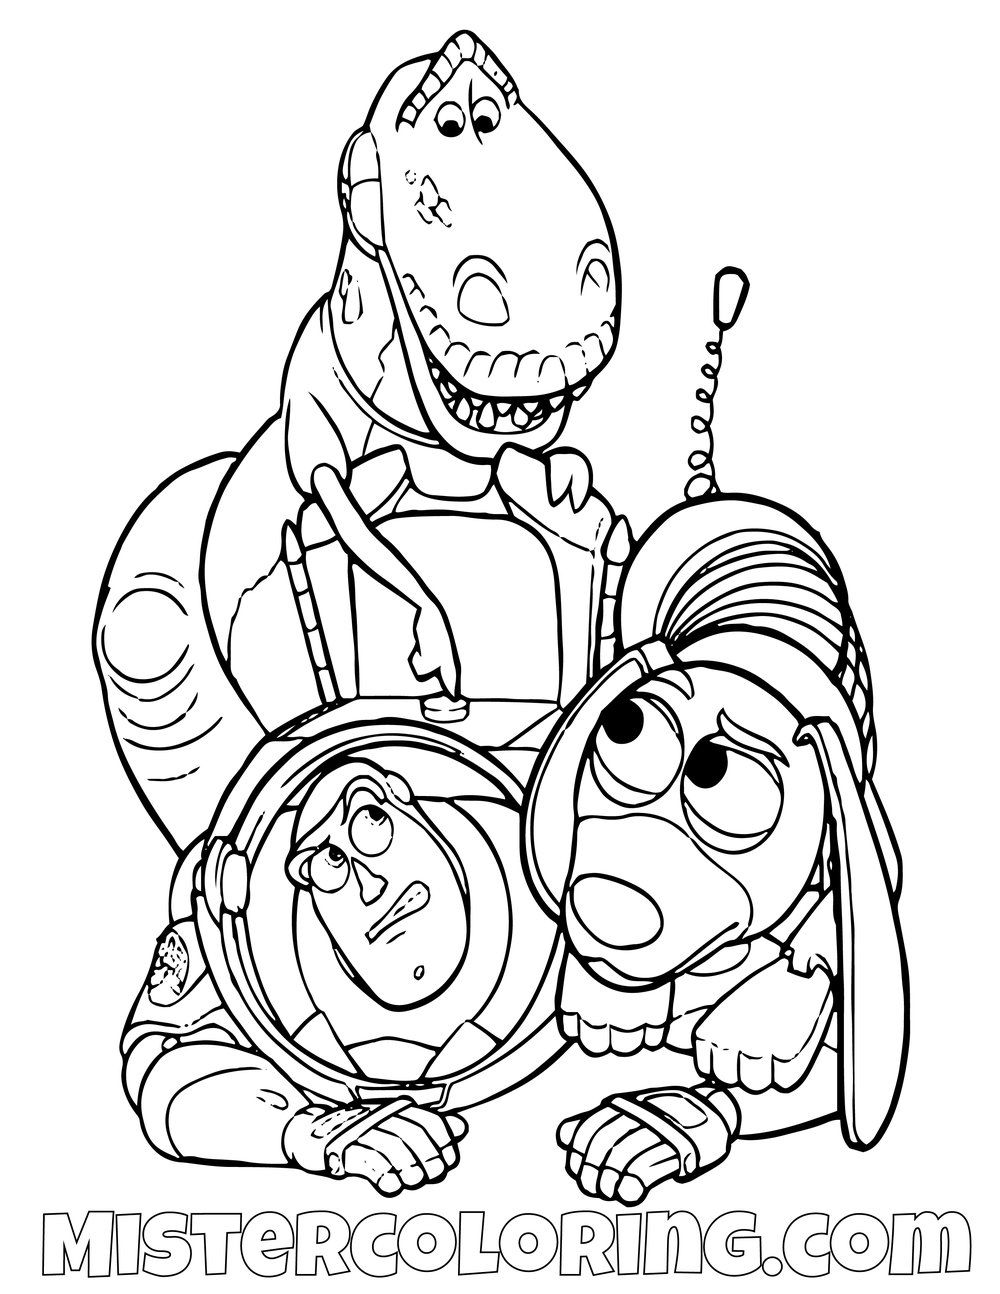 Rex And Slinky Dog Turning Buzz Lightyear Off Toy Story Coloring